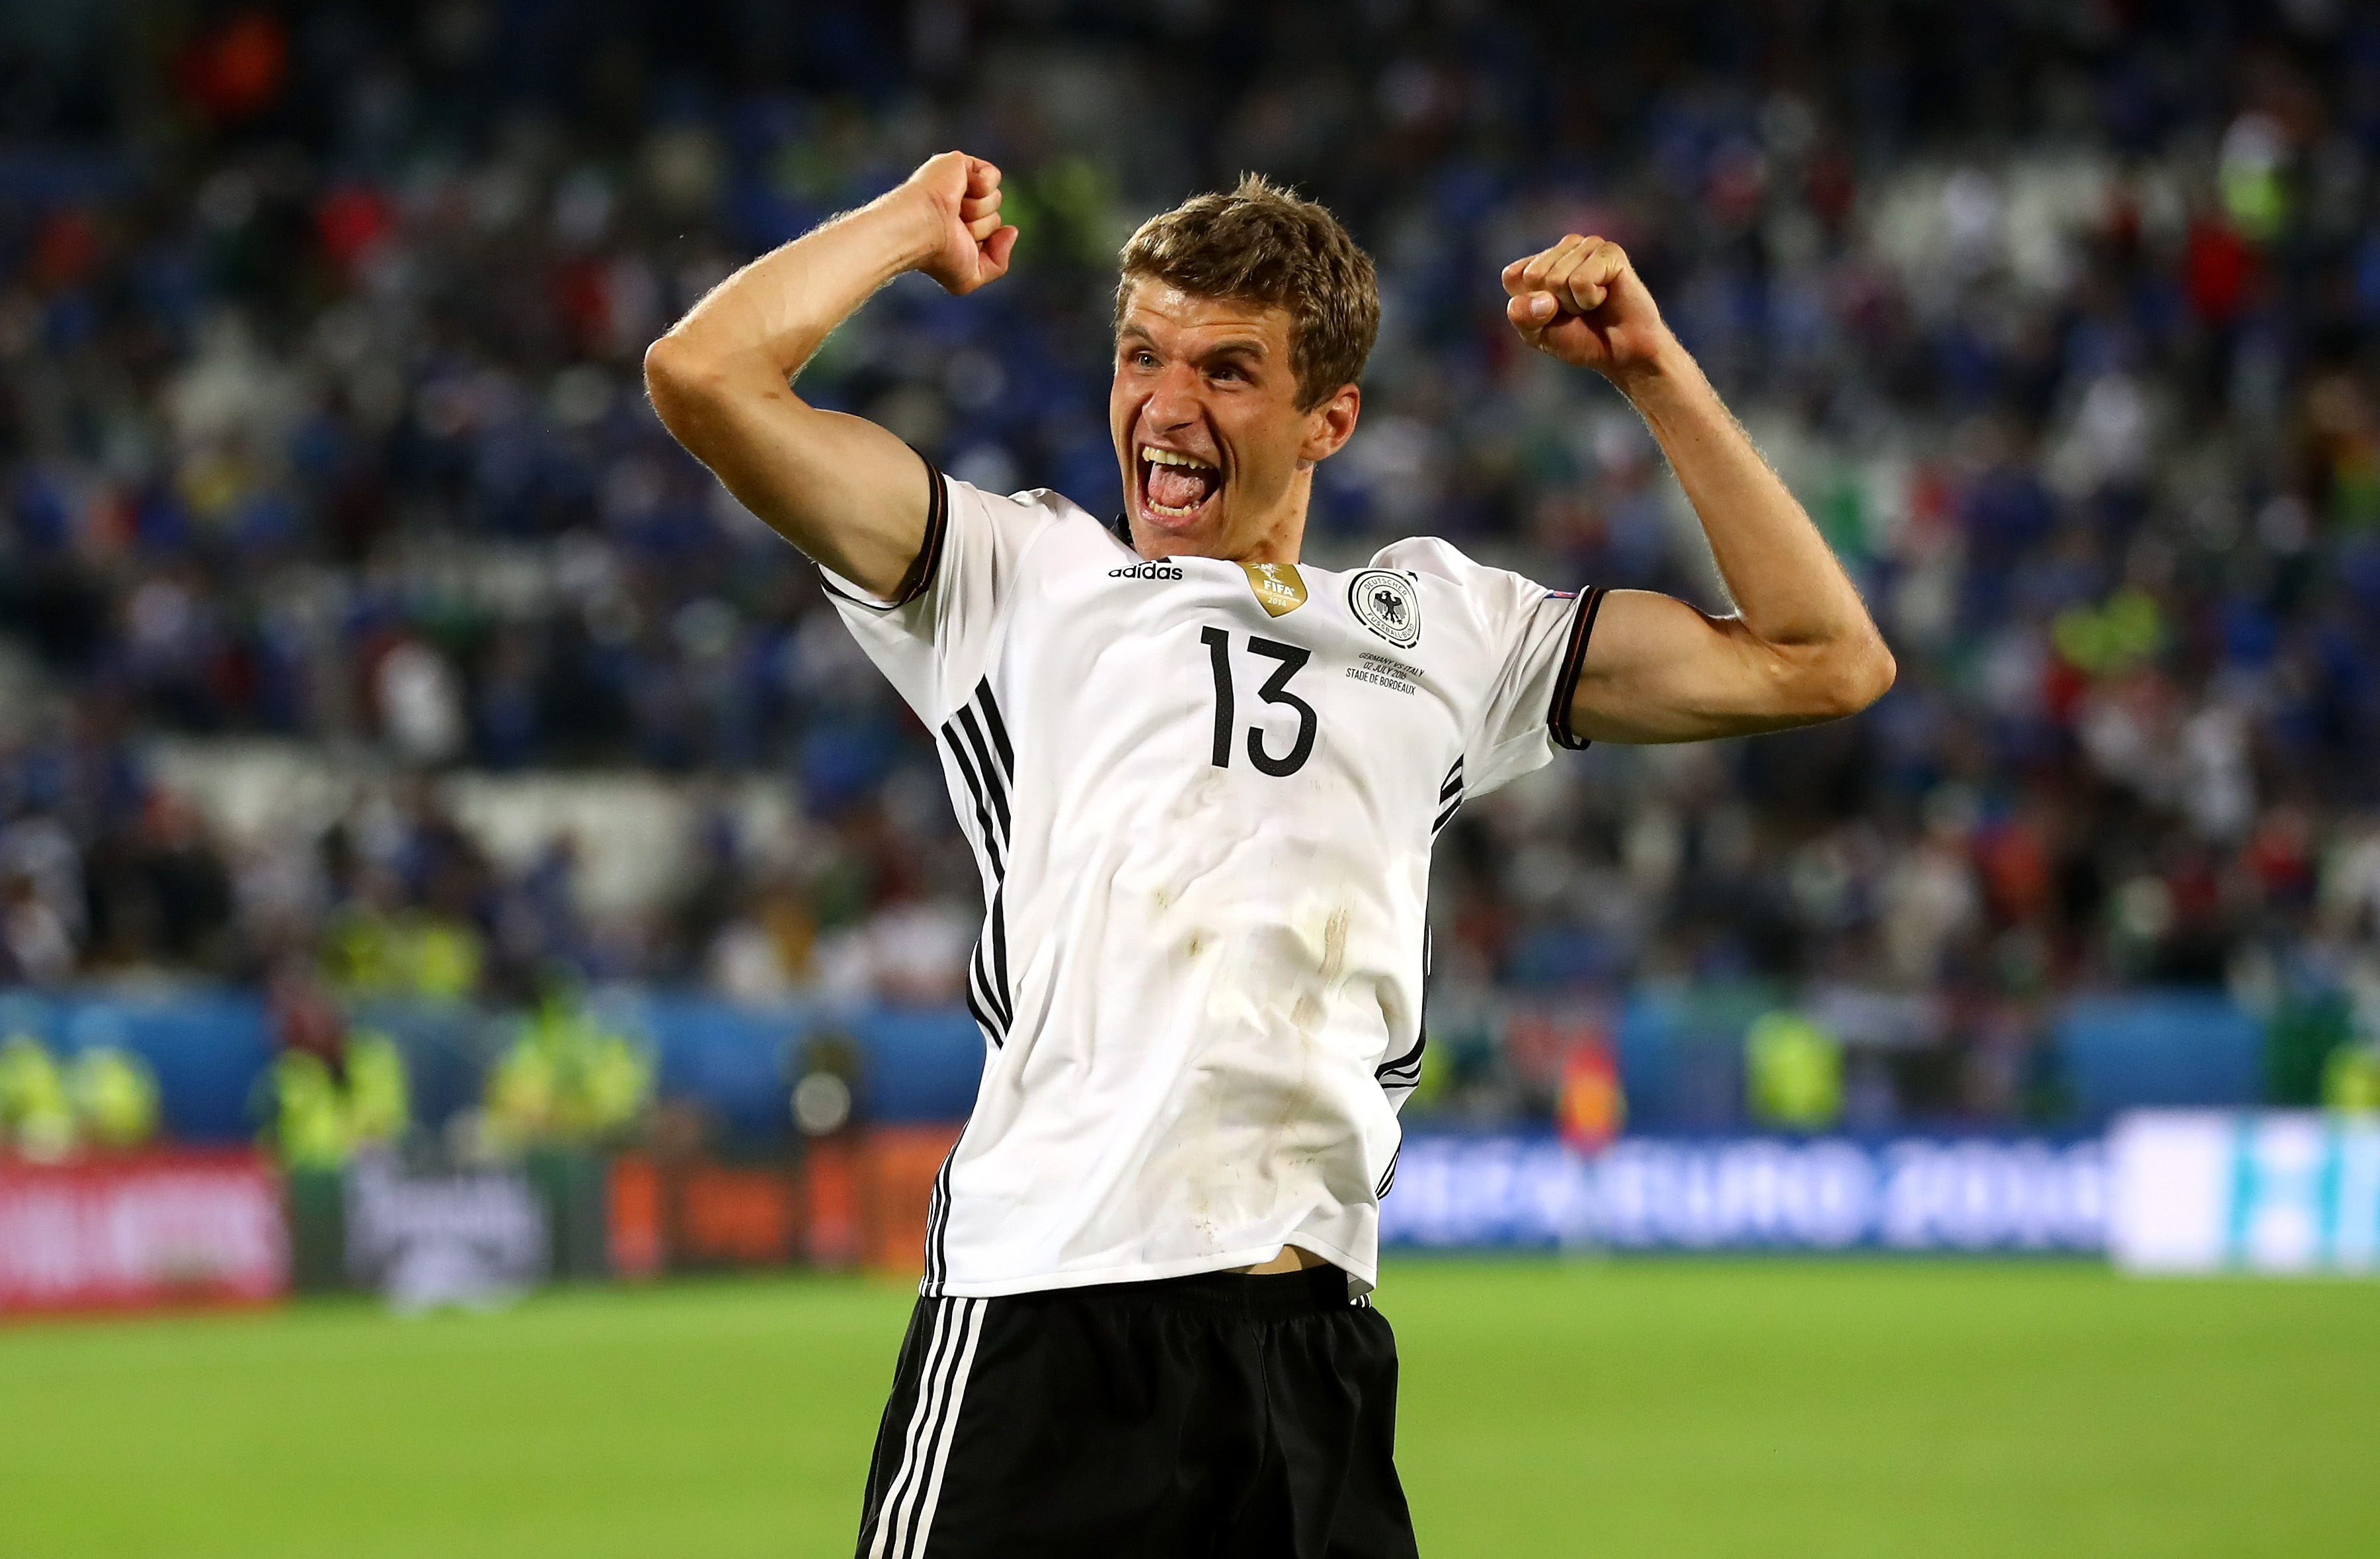 BORDEAUX, FRANCE - JULY 02: Thomas Mueller of Germany celebrates his team's win through the penalty shootout during the UEFA EURO 2016 quarter final match between Germany and Italy at Stade Matmut Atlantique on July 2, 2016 in Bordeaux, France. (Photo by Alexander Hassenstein/Getty Images)